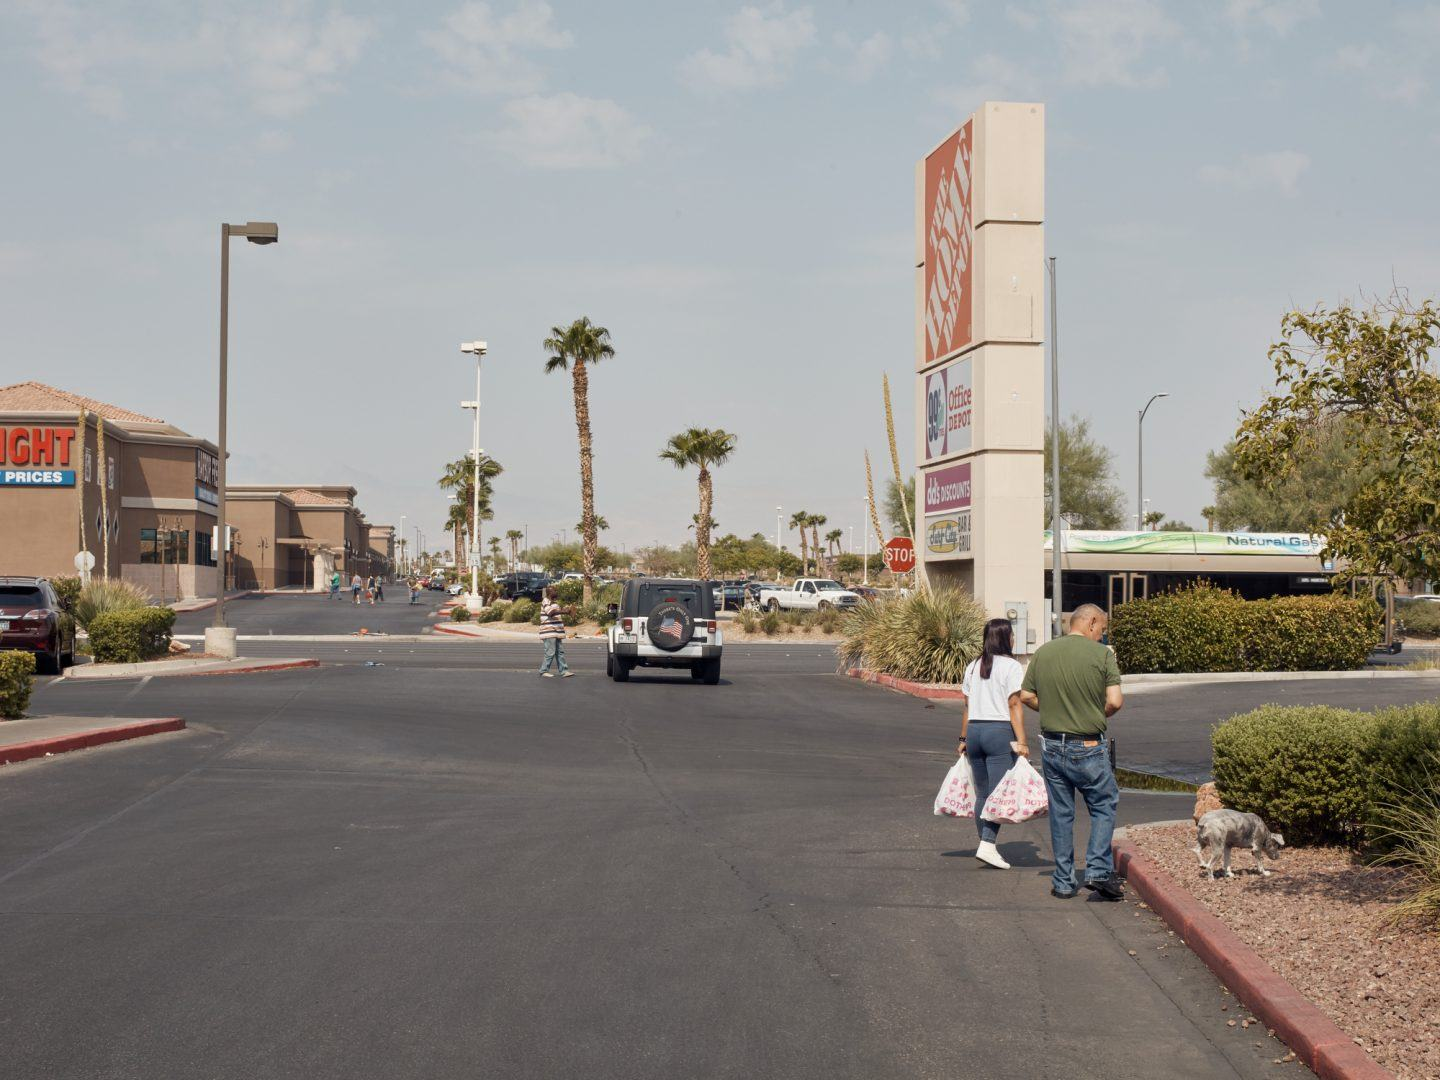 IGNANT-Photography-Ross-Mantle-North-Las-Vegas-03